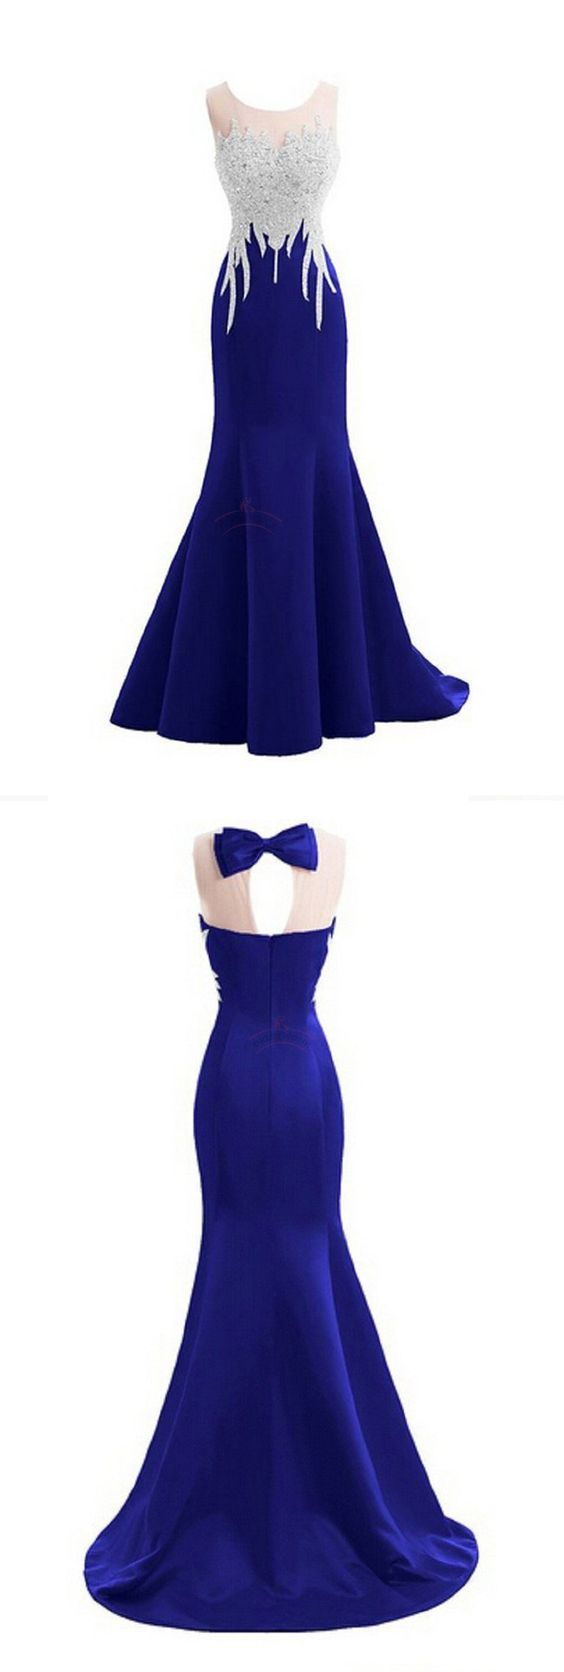 Mermaid Prom Gown,Royal Blue Prom Dresses,Royal Blue Evening Gowns,Beaded Party Dresses,Evening Gowns,2016 Formal Dress For Teen